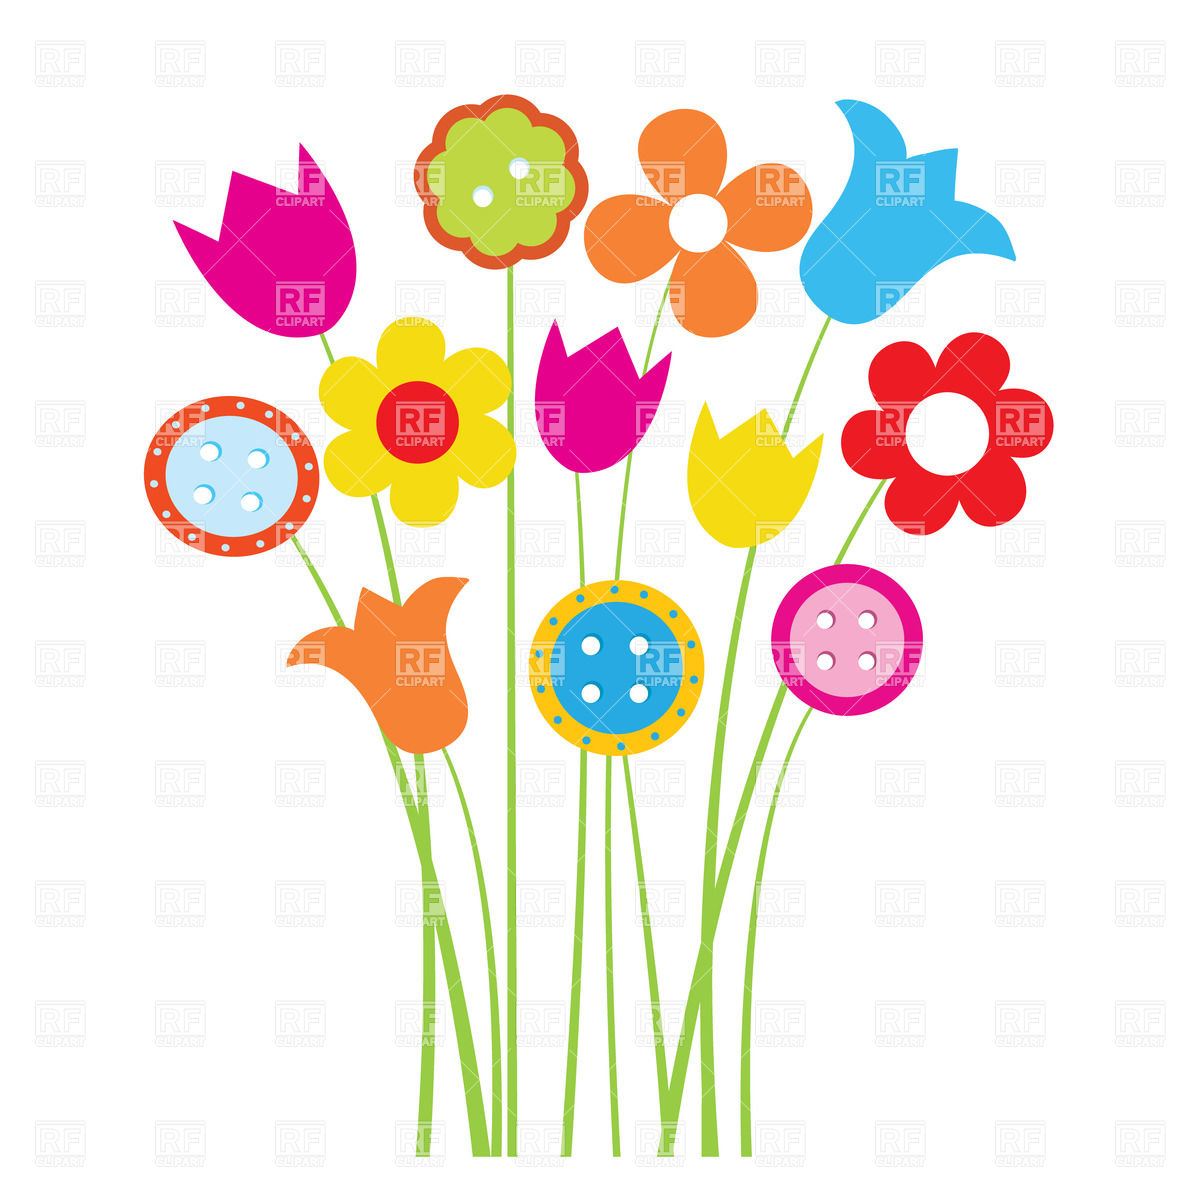 Flower Wallpaper Clipart - Clipart Kid